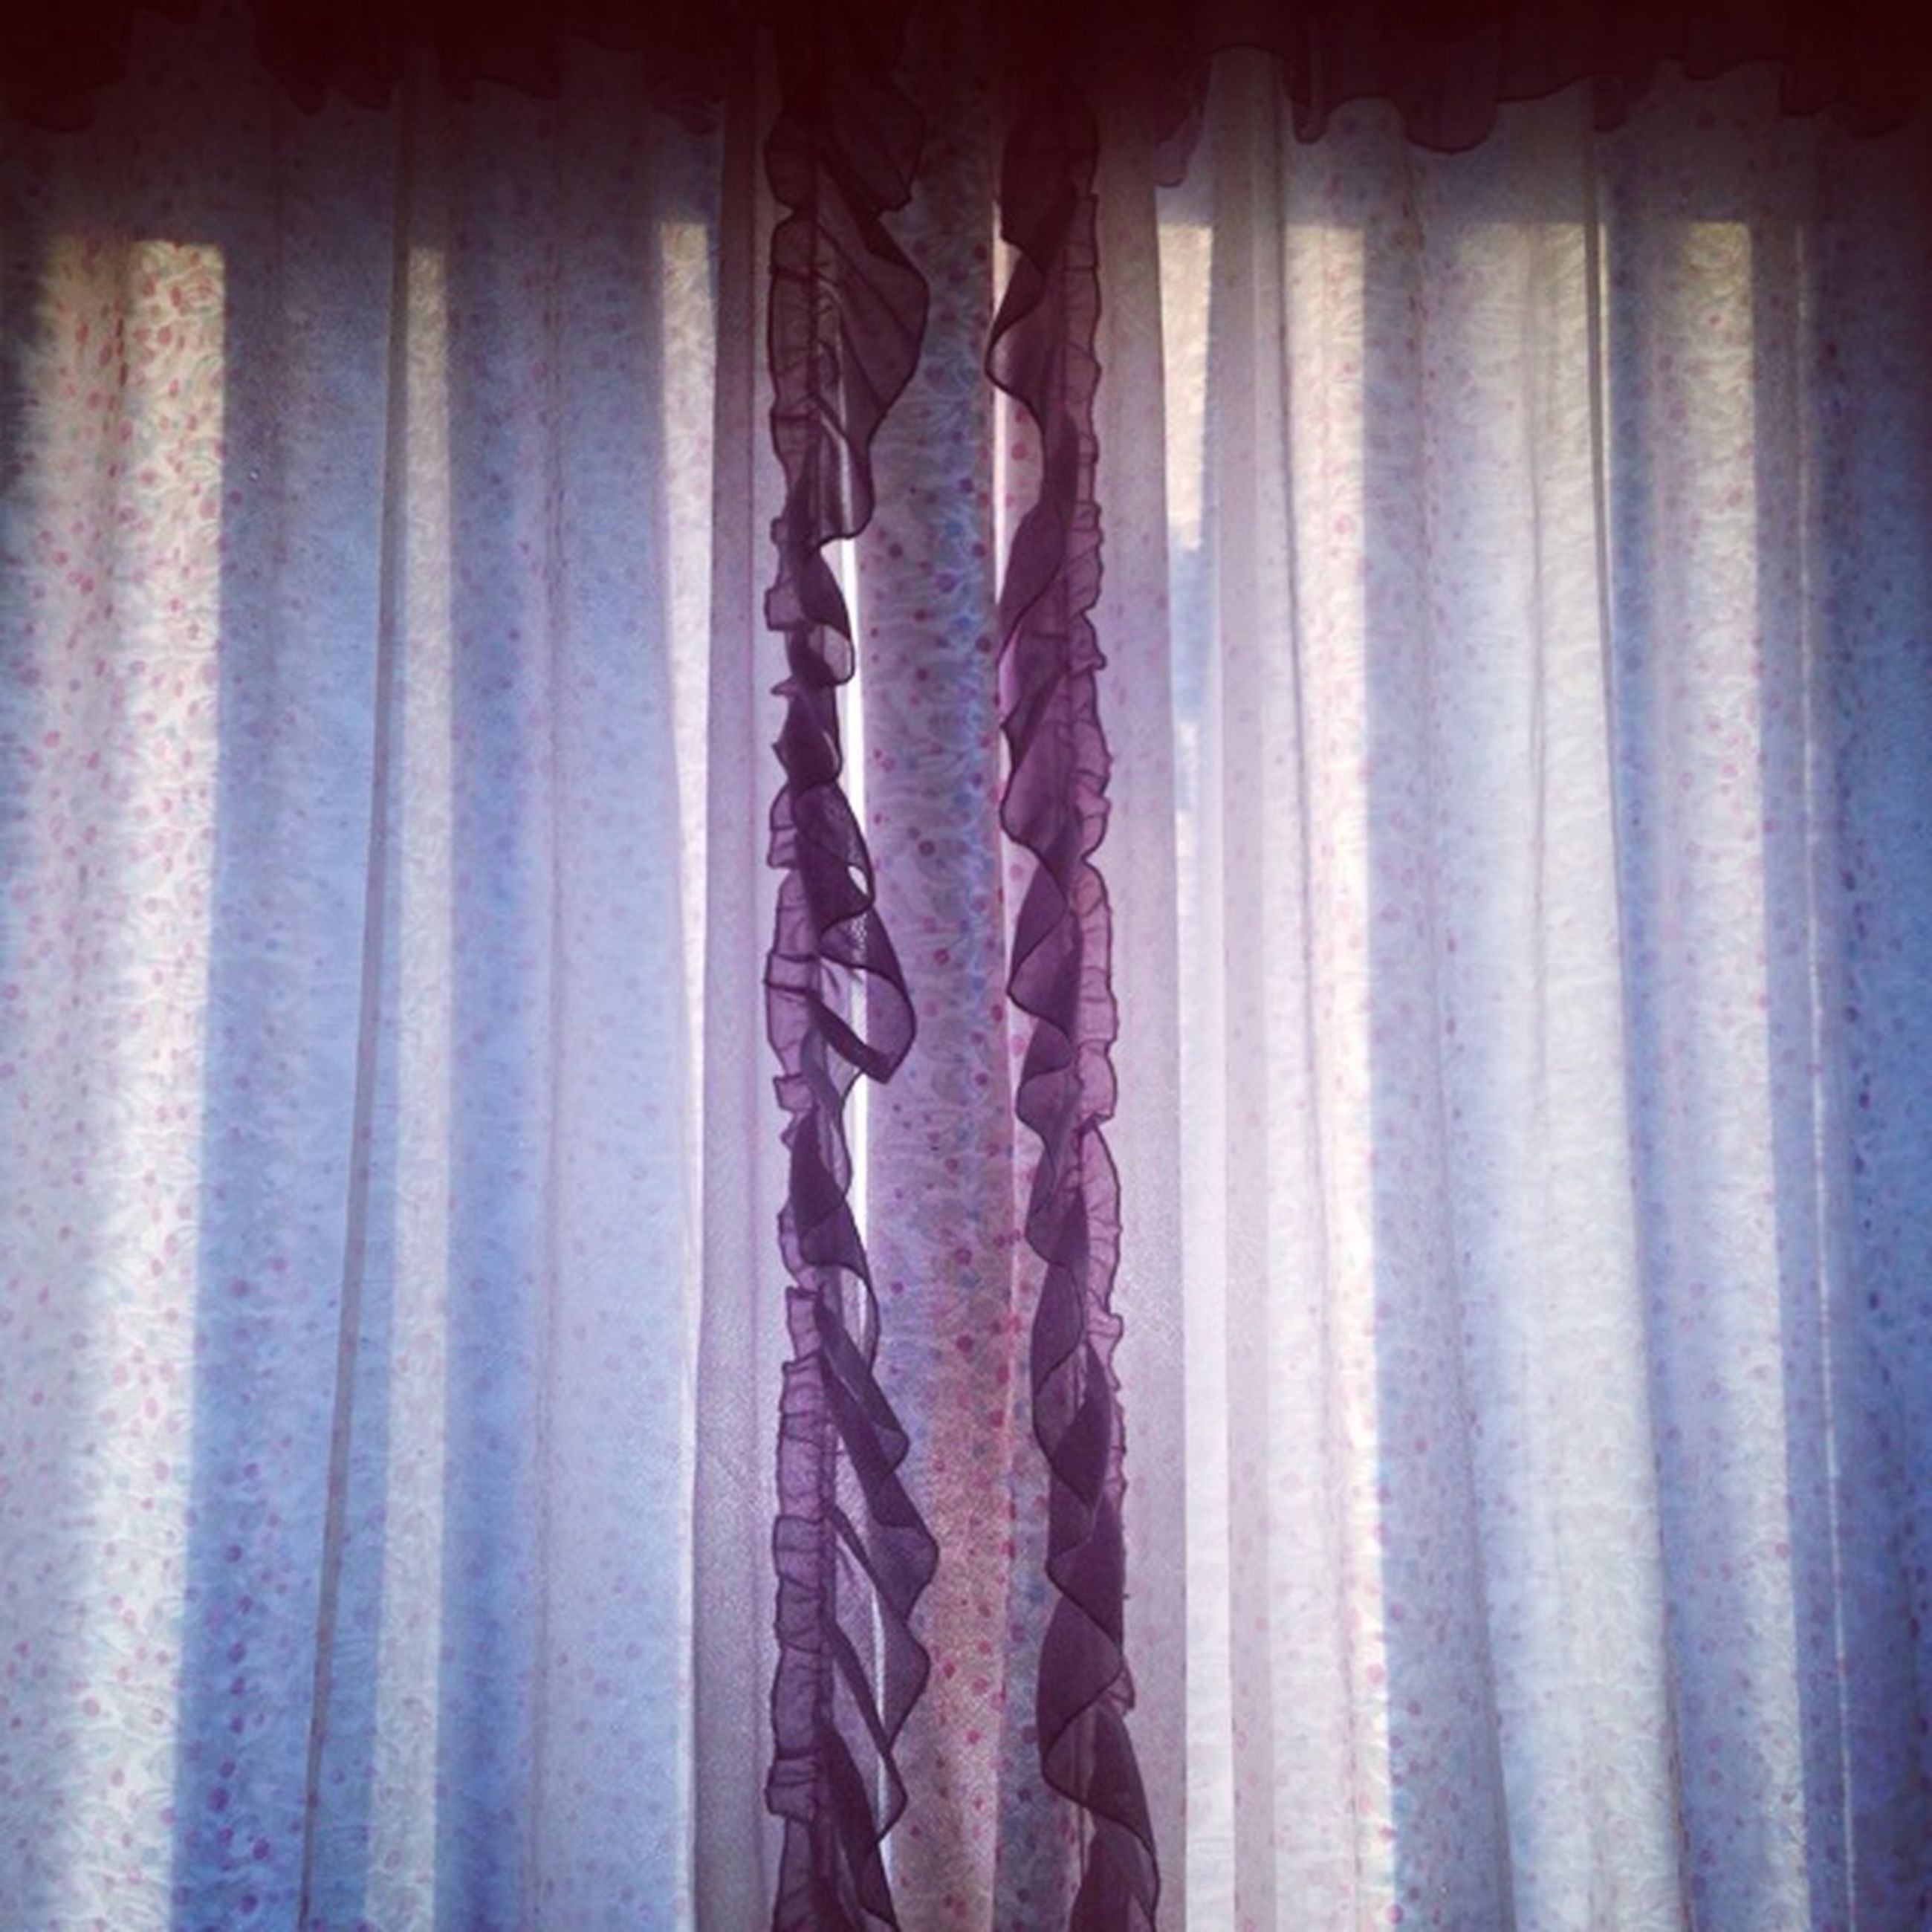 indoors, curtain, window, home interior, textile, fabric, house, hanging, wall - building feature, no people, close-up, sunlight, pattern, wall, day, architecture, domestic room, built structure, bed, absence